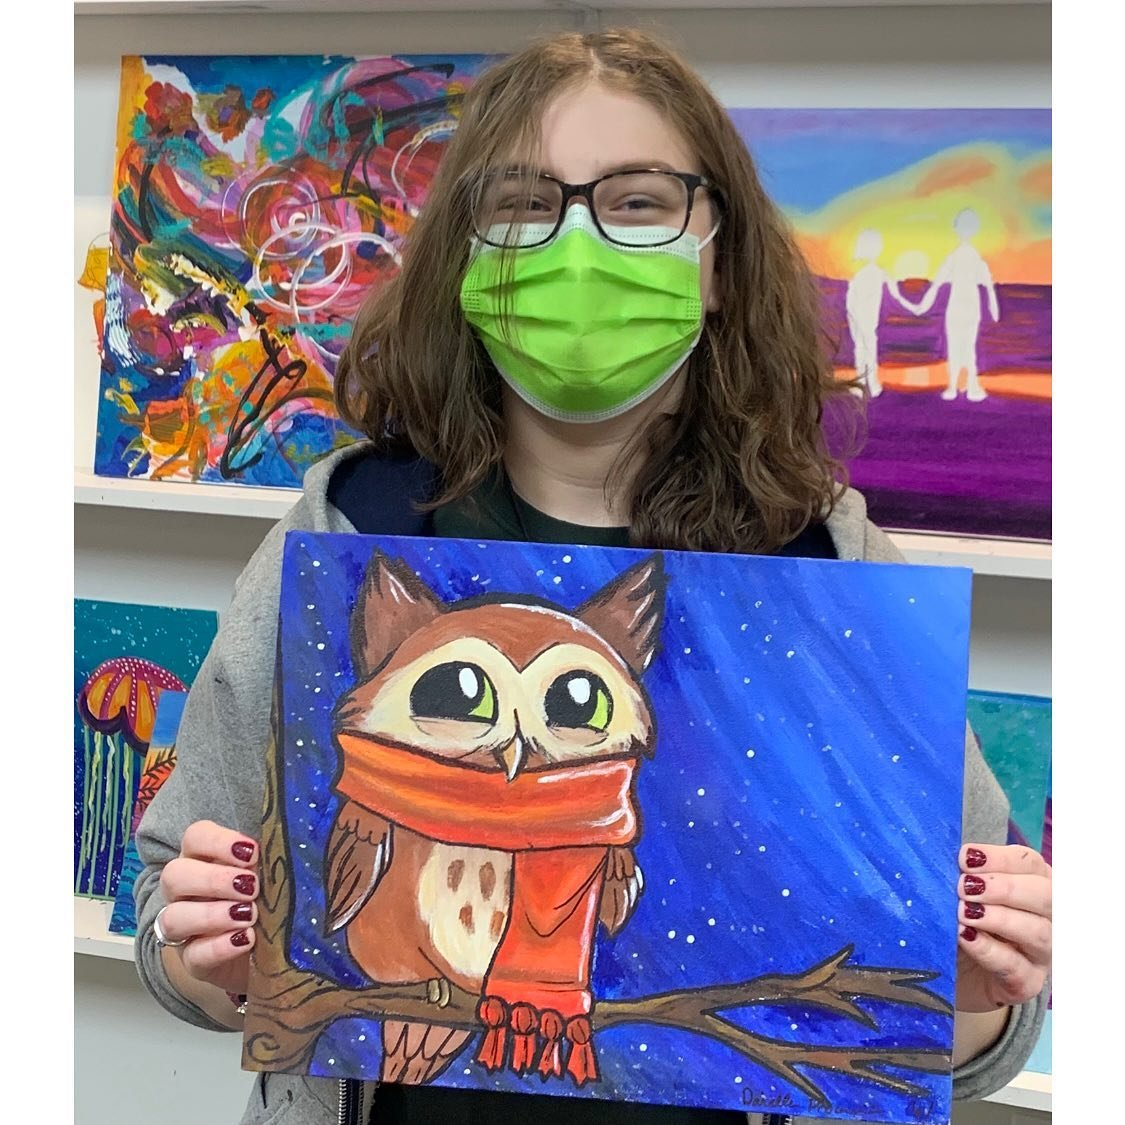 Daniella Procaccini, 15, with her canvas painting.